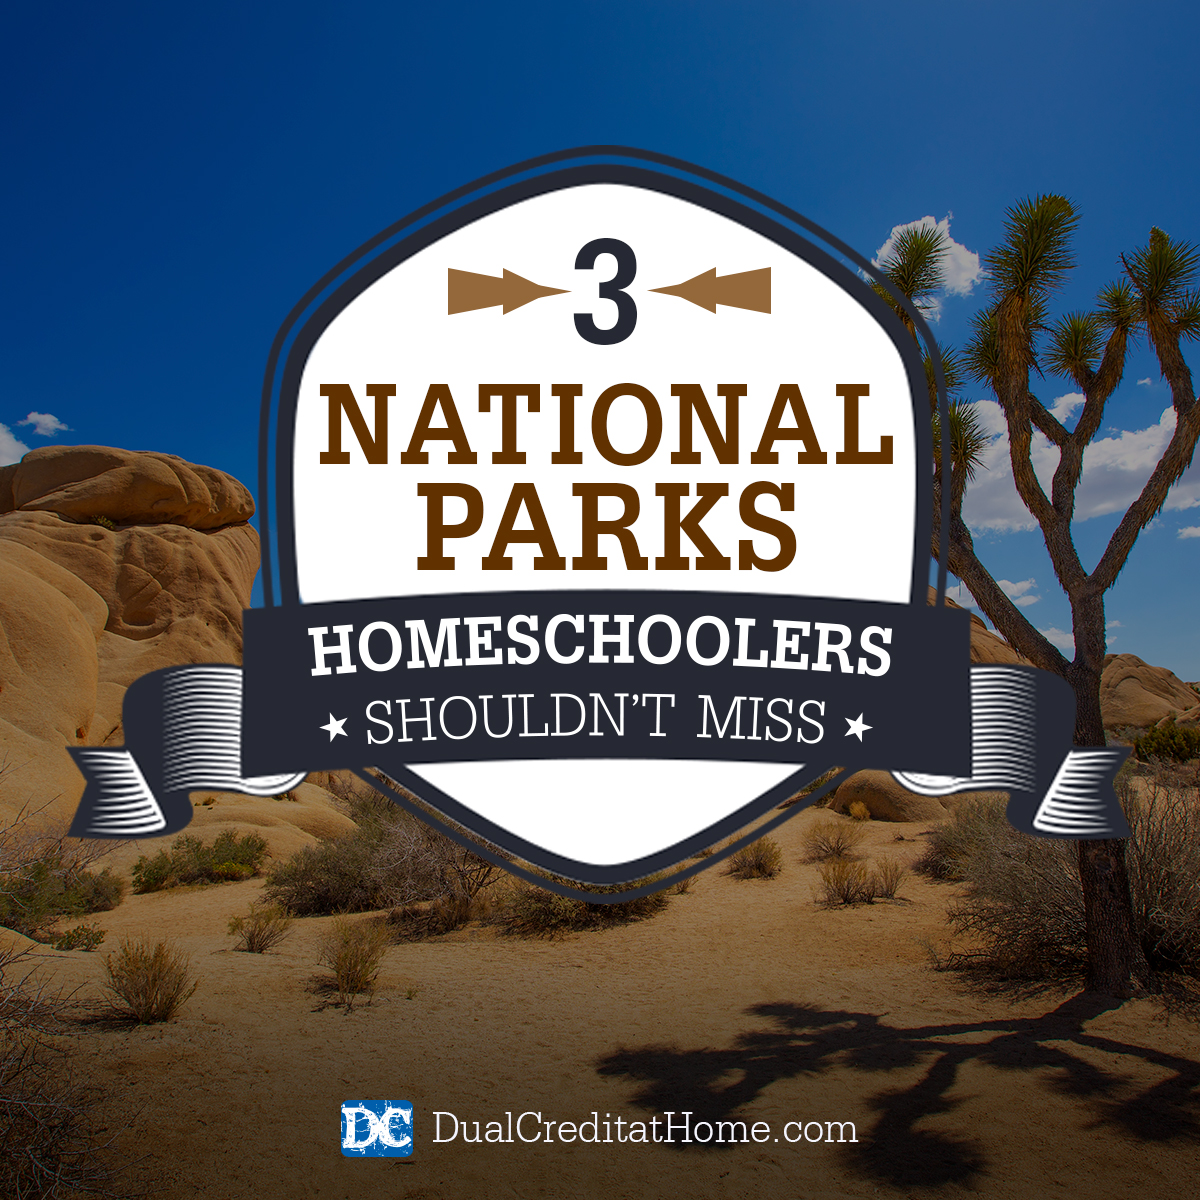 3 National Parks Homeschoolers Shouldn't Miss